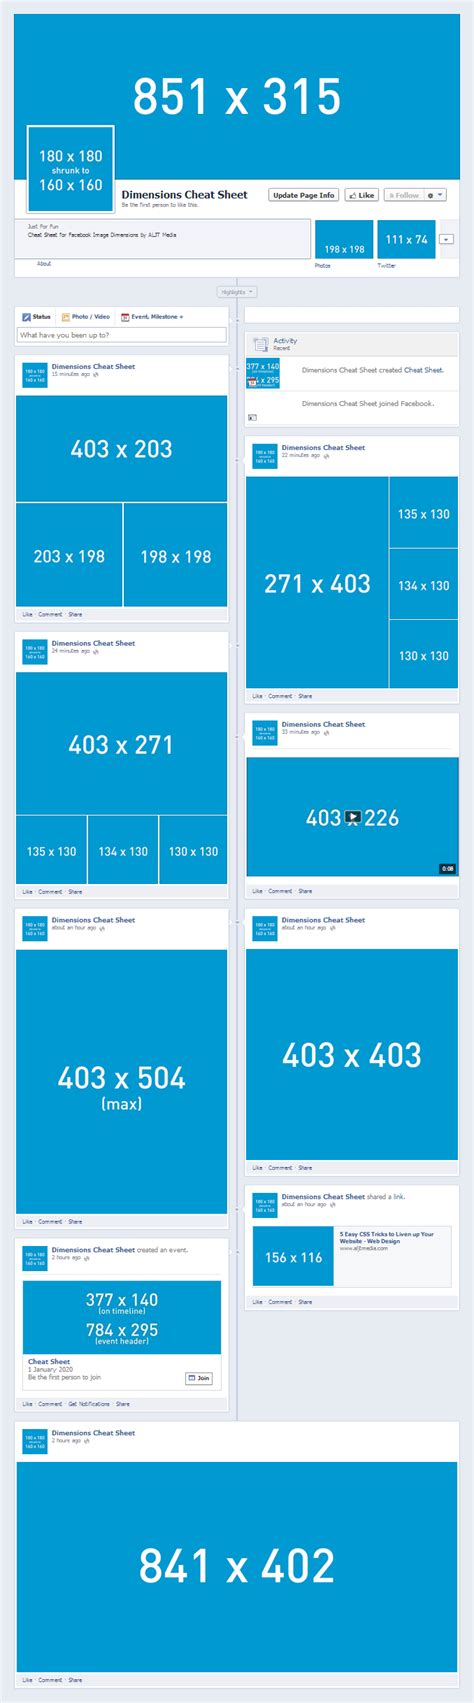 fb post size social media image dimensions cheat sheet design